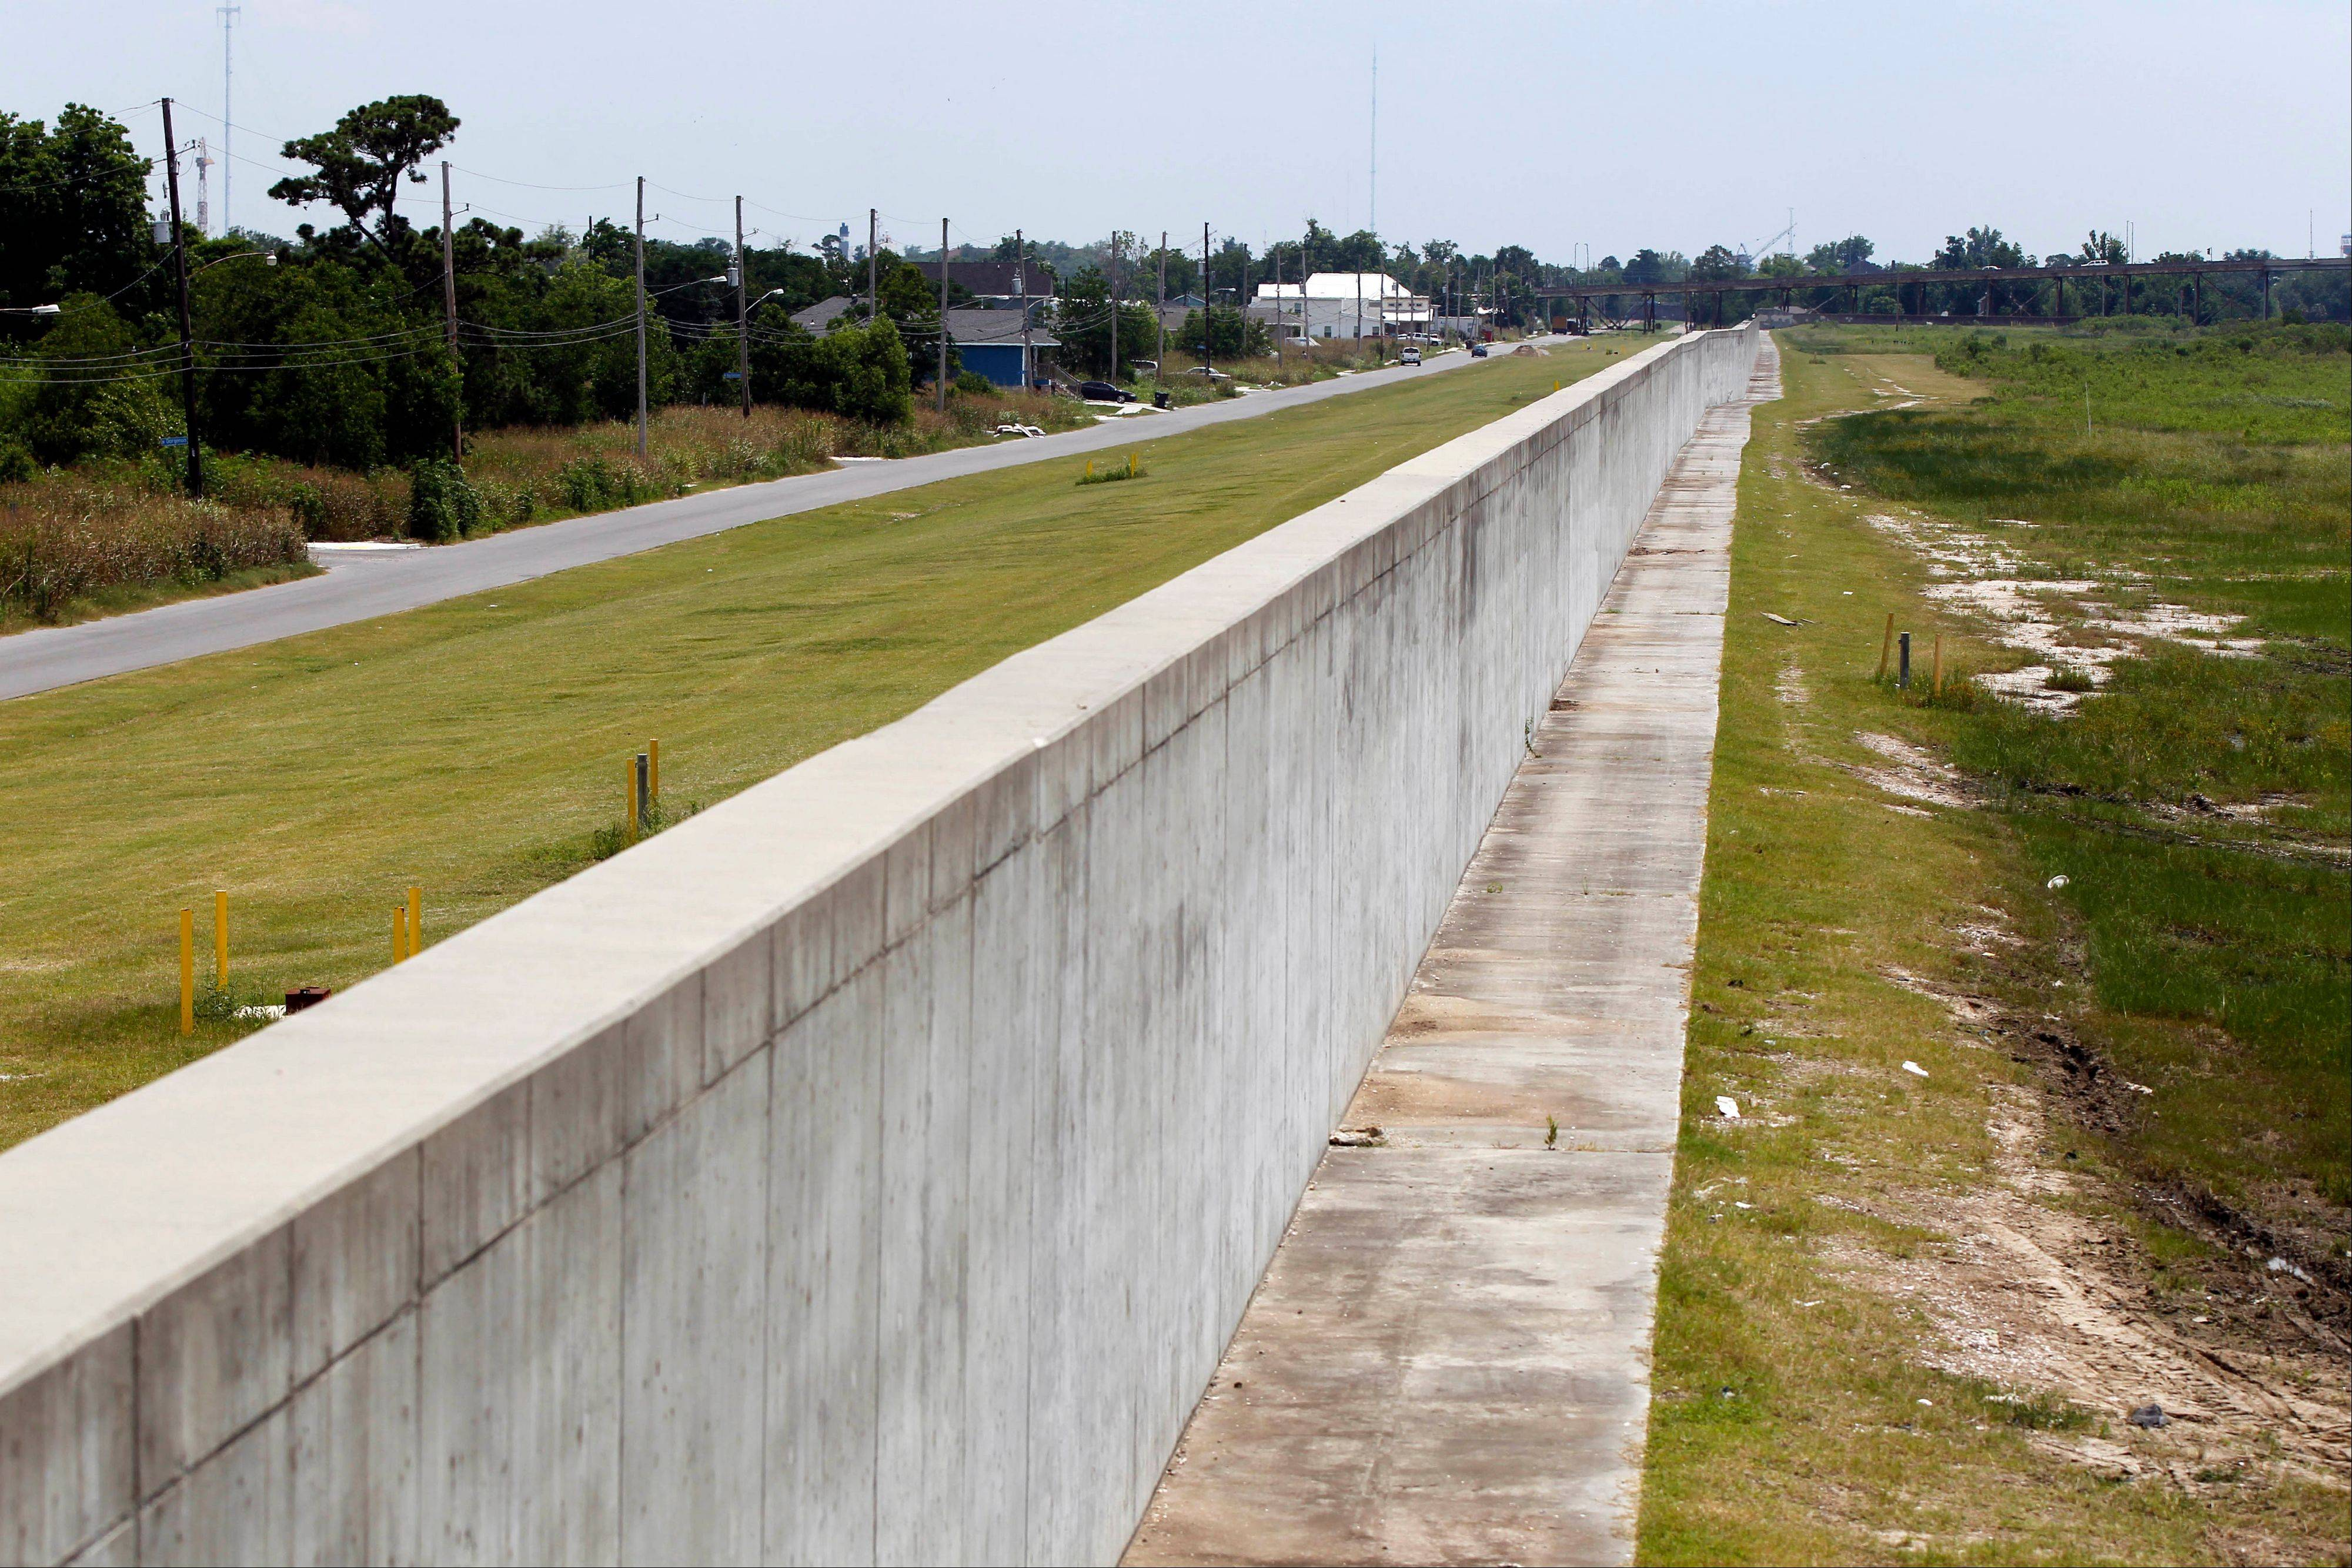 The new levee wall, constructed with reinforced concrete, is seen at one of the breach sites from Hurricane Katrina, in the Lower 9th Ward in New Orleans.